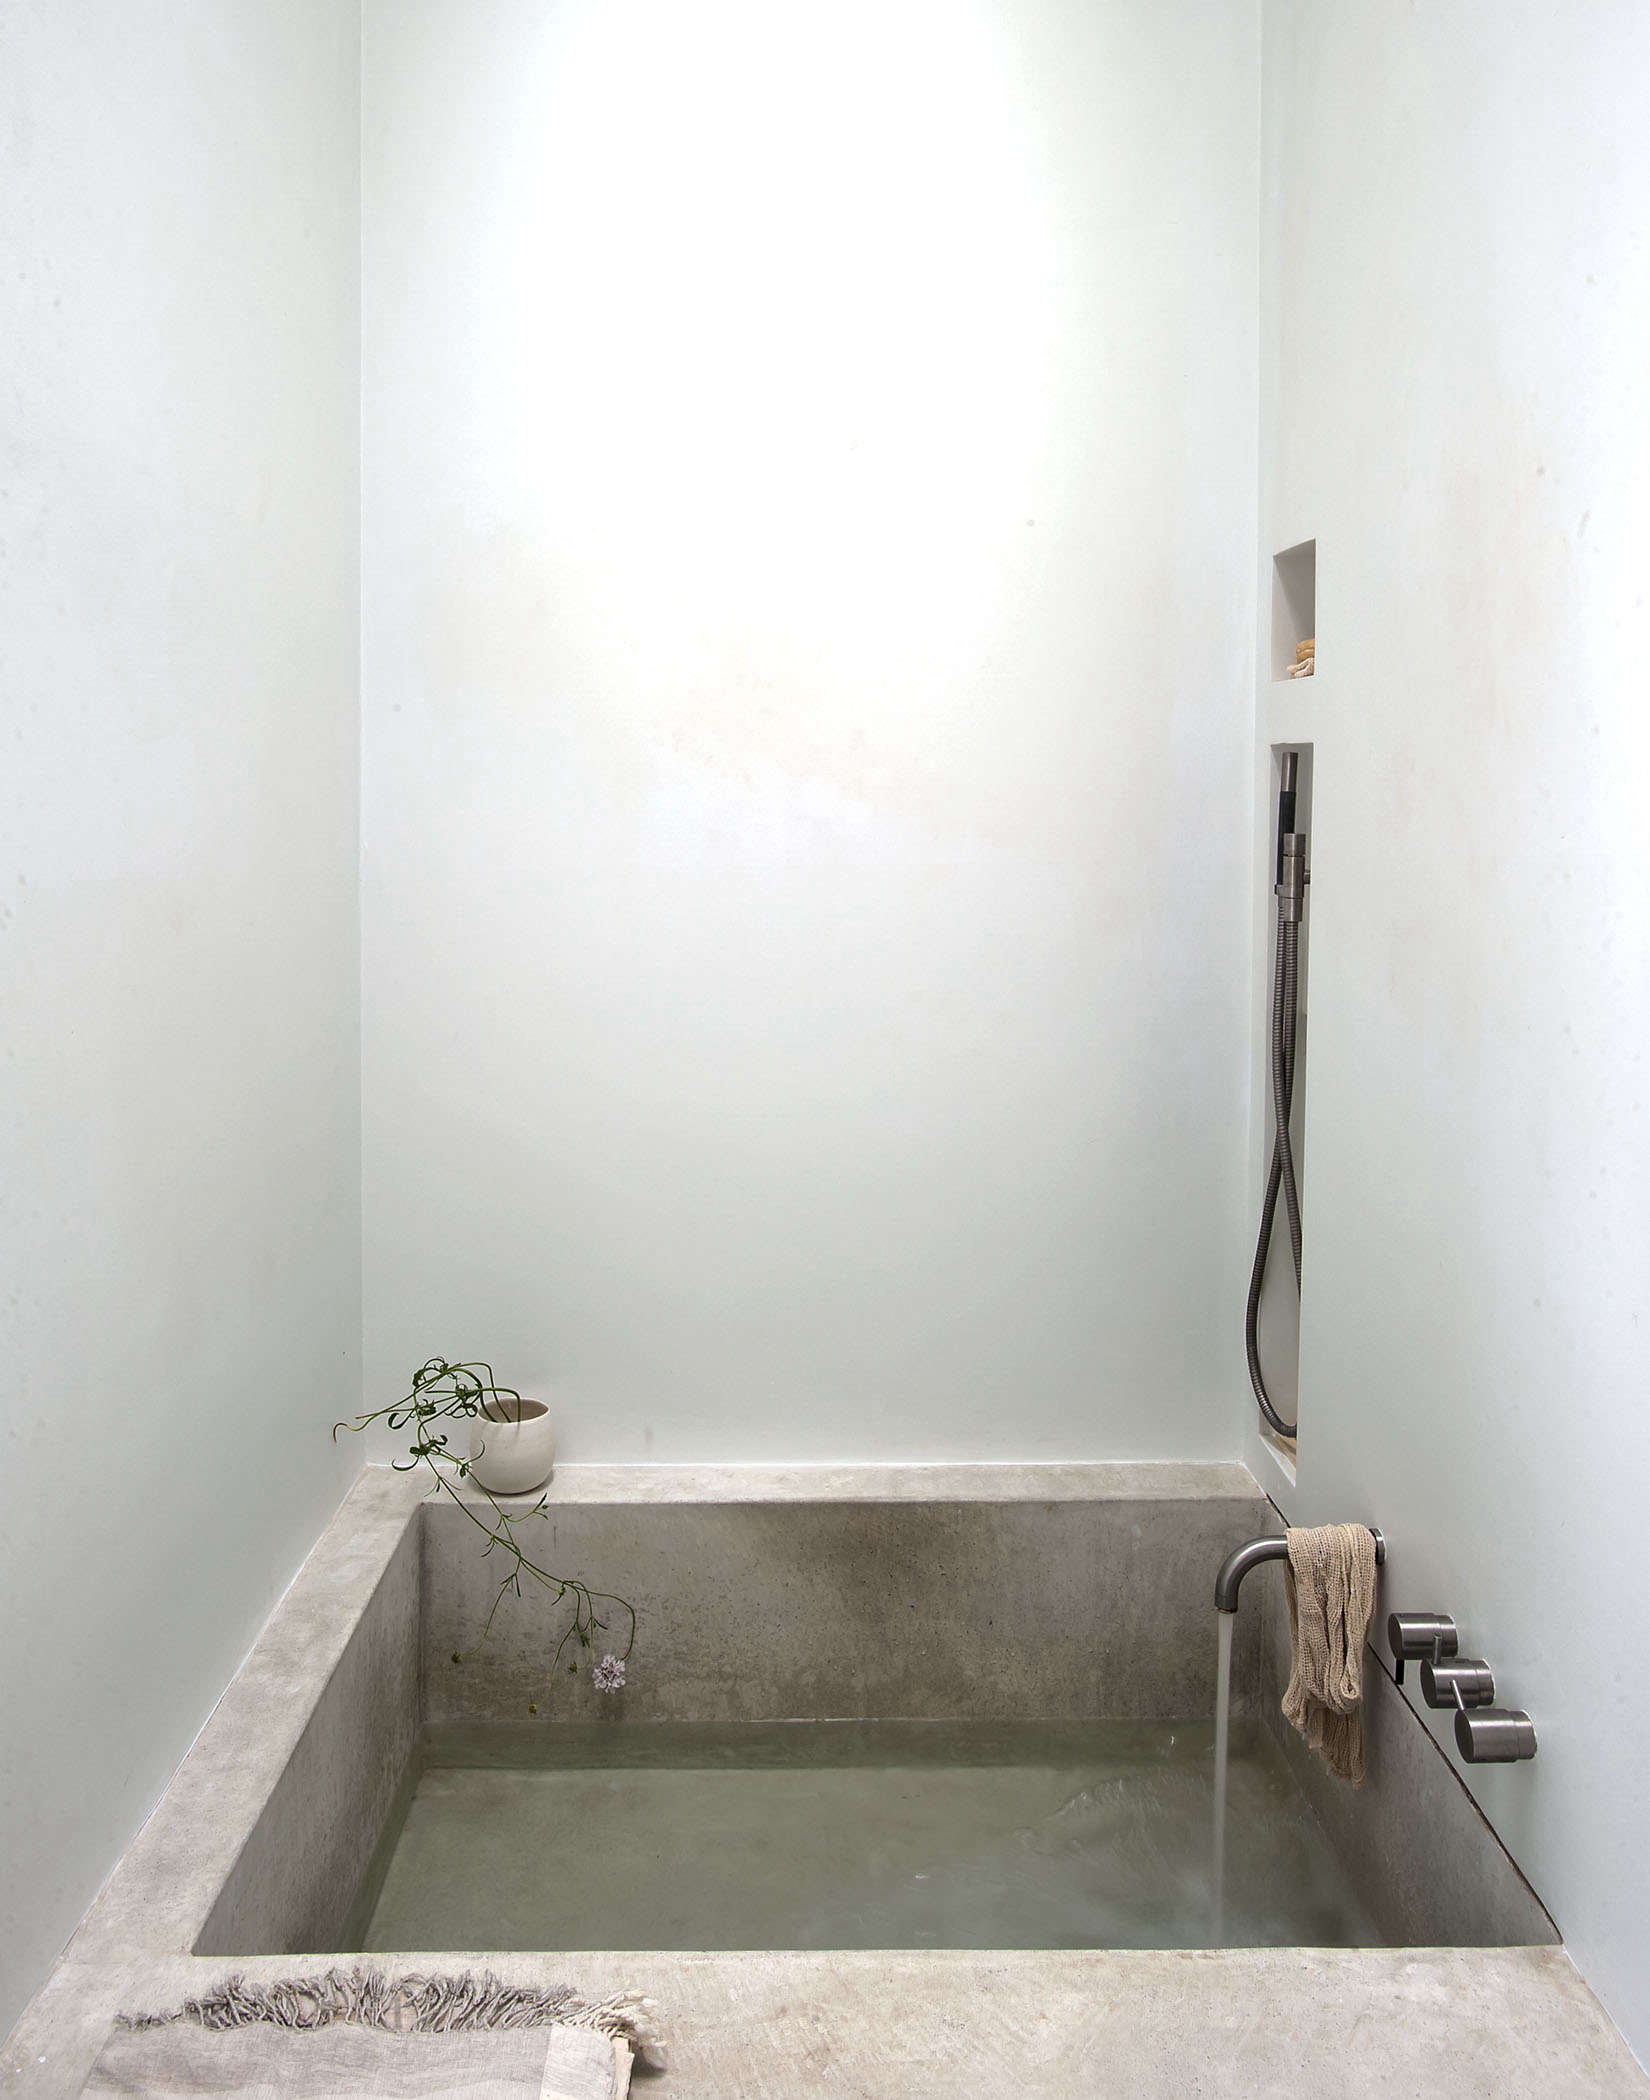 Tiny spa bath in LA by Michaela Scherrer photo by Matthew Williams | Remodelista